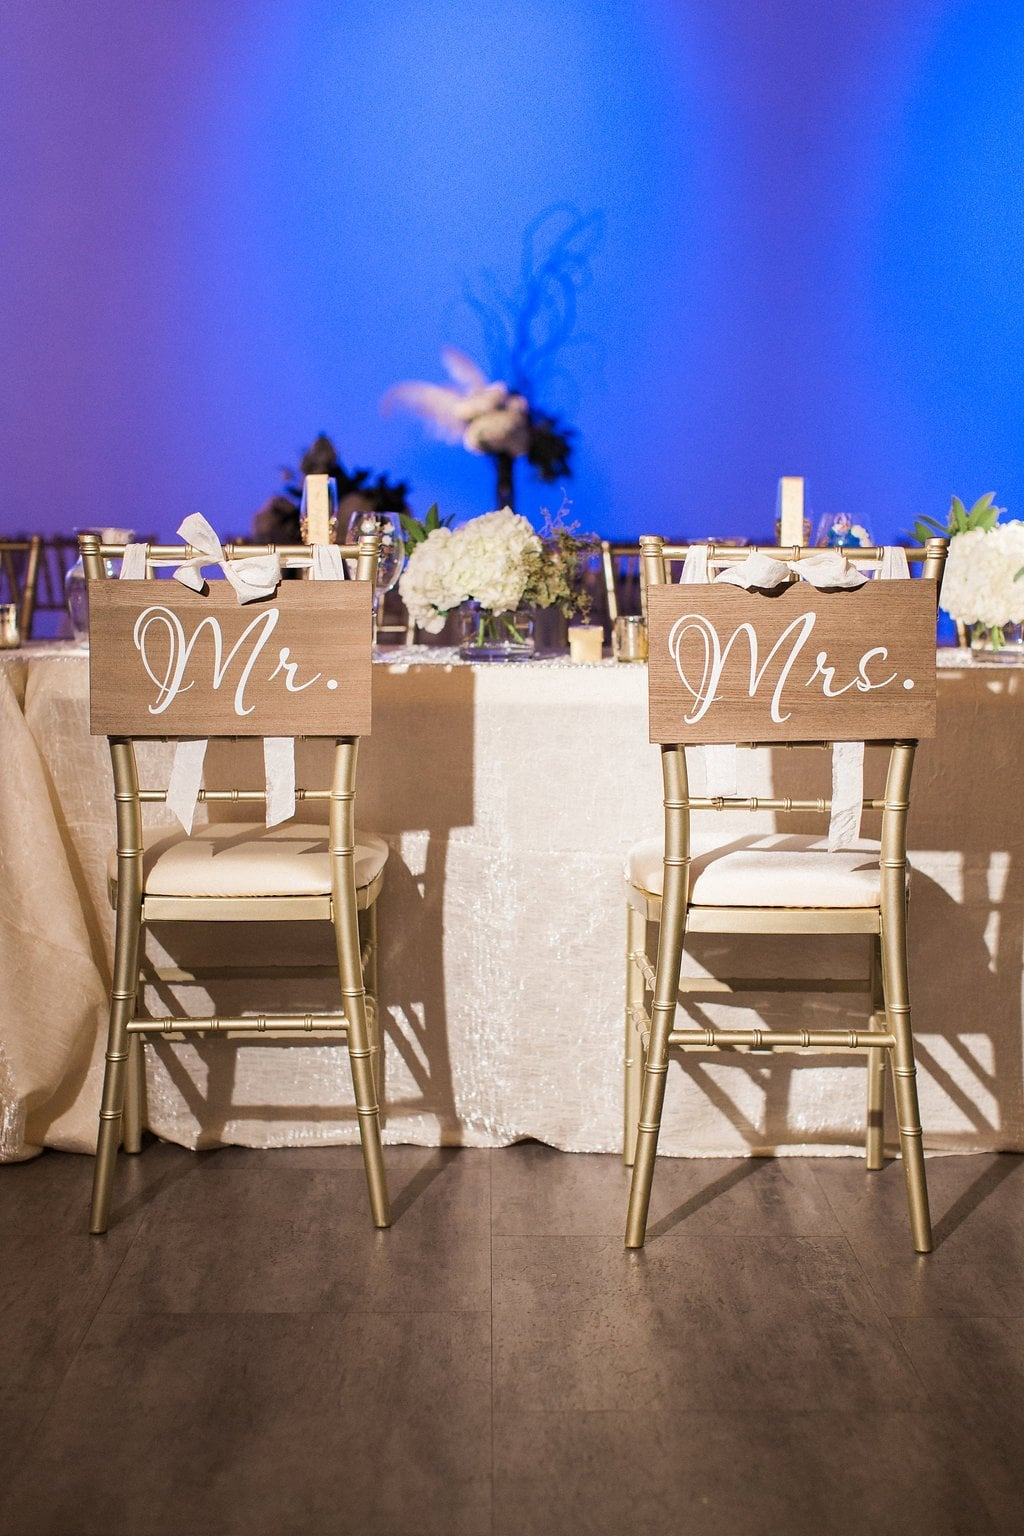 Calligraphy Mr. and Mrs. on wood signs over the back of gold chiarvari chairs with blue uplighting